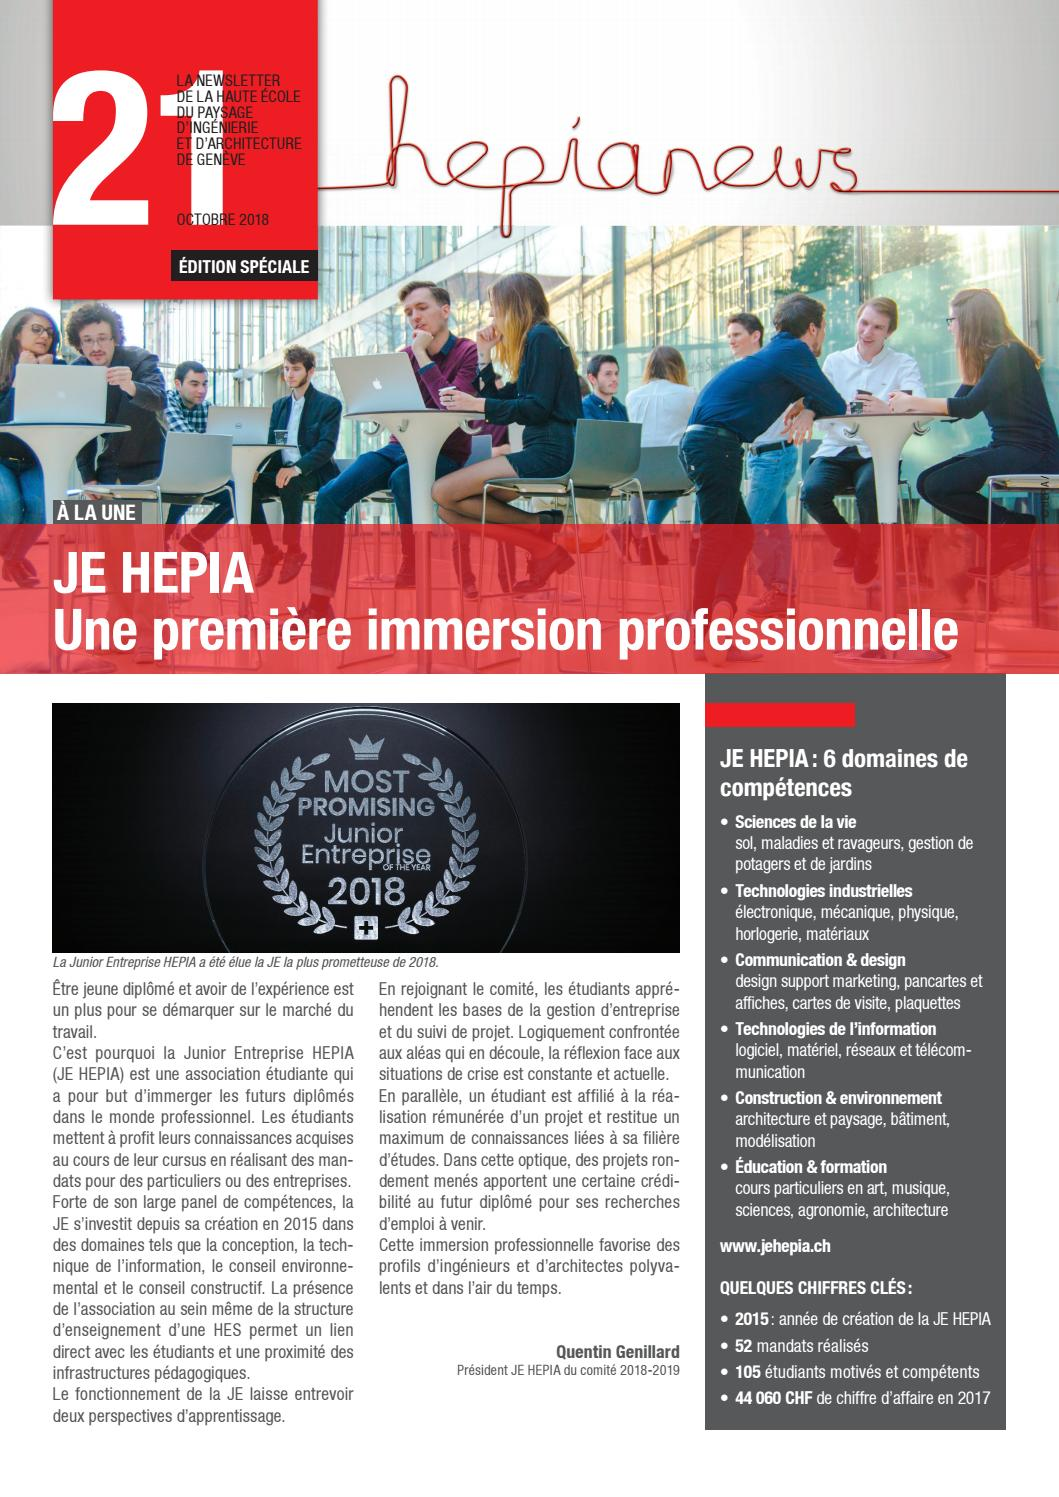 Hepianews N21 By HES SO Geneve